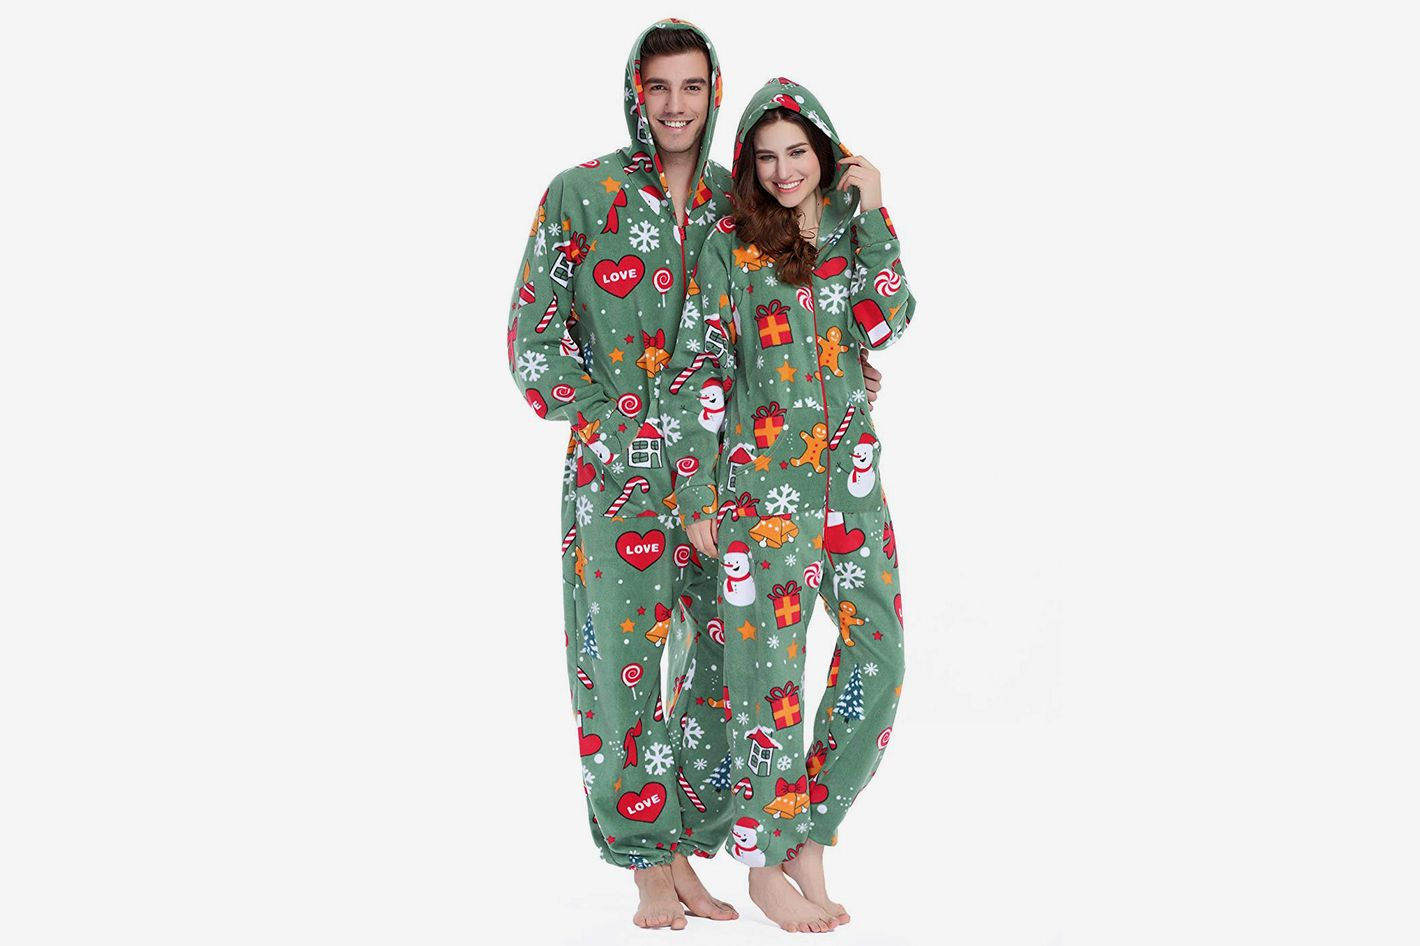 xmascoming unisex hooded fleece onesie